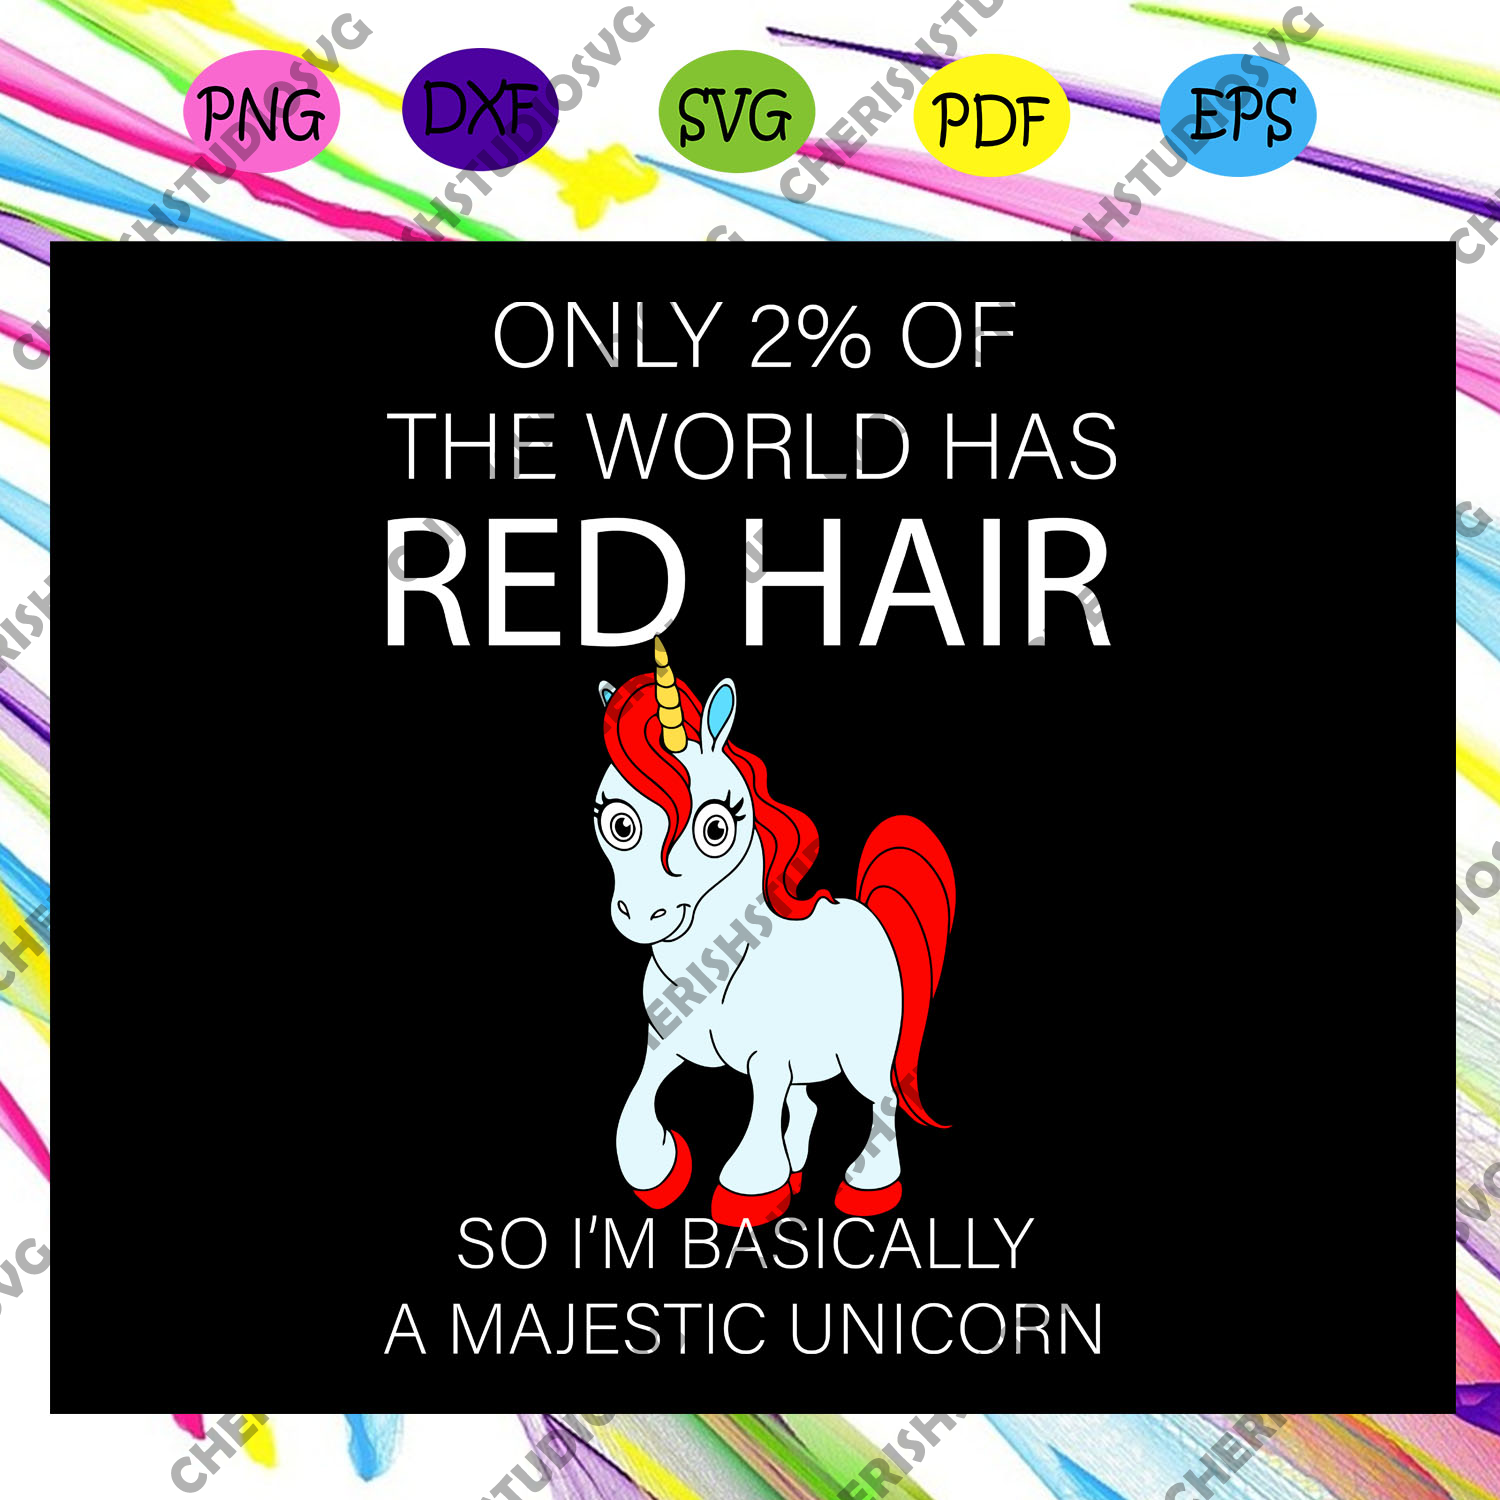 I'm basically a majestic unicorn, red hair bow, red hair, red bow, red hair gift, unicorn, unicorn svg, unicorn lover svg, unicorn lover gift,trending svg For Silhouette, Files For Cricut, SVG, DXF, EPS, PNG Instant Download